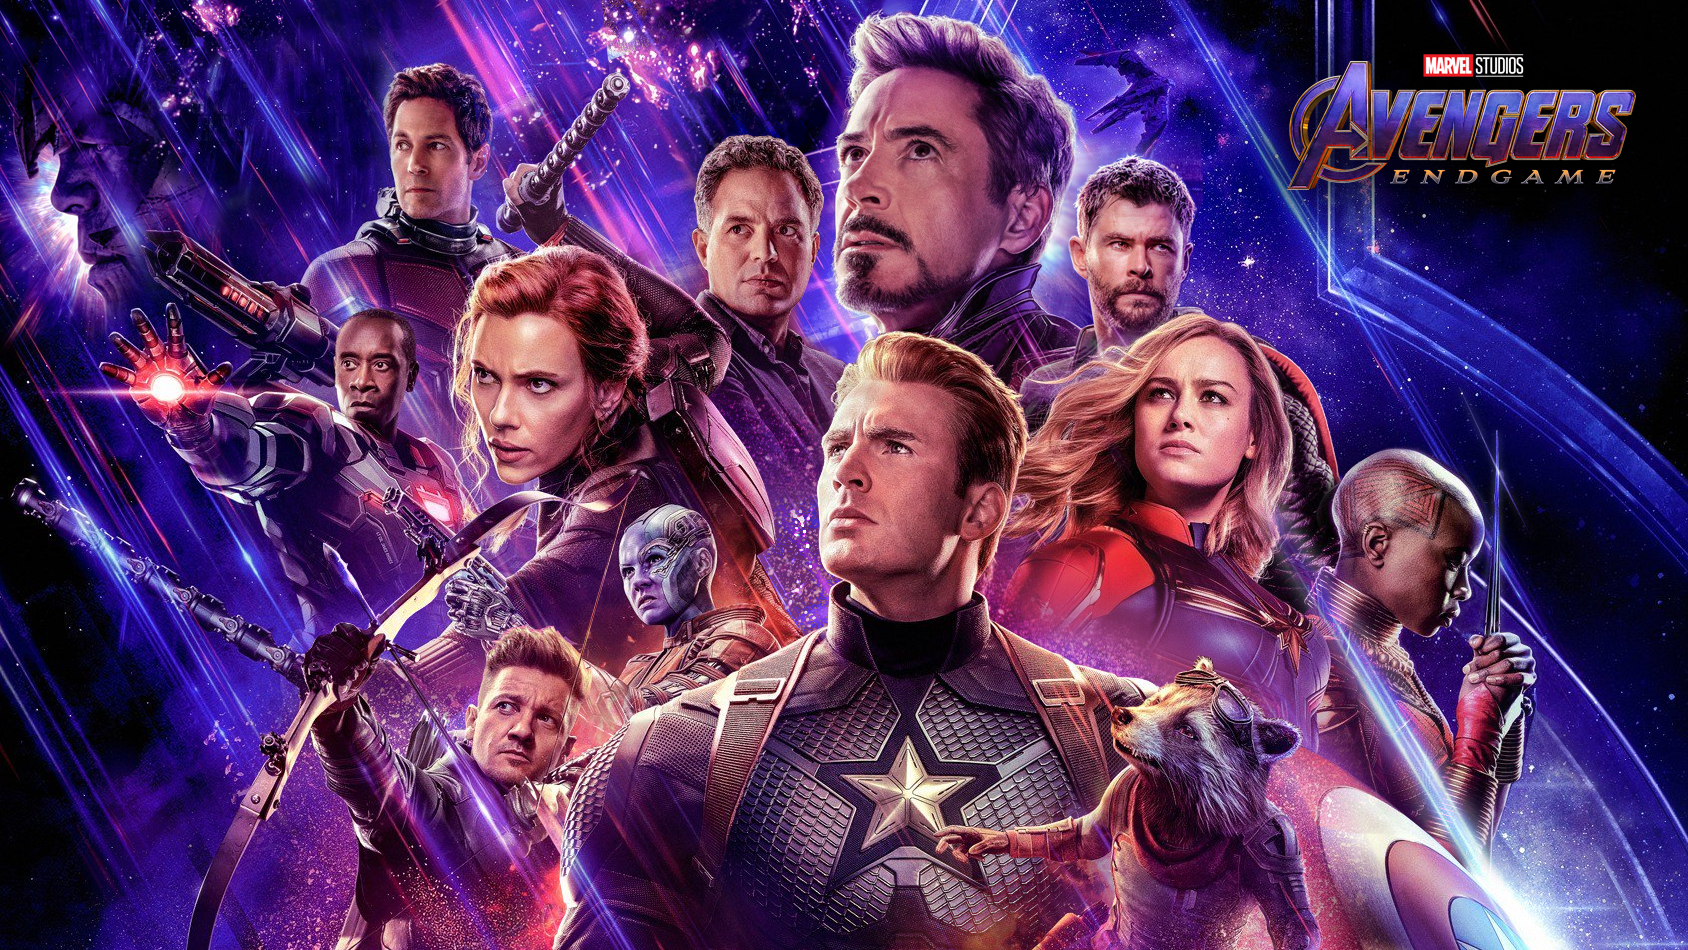 Avengers Endgame 2019 Movies Poster